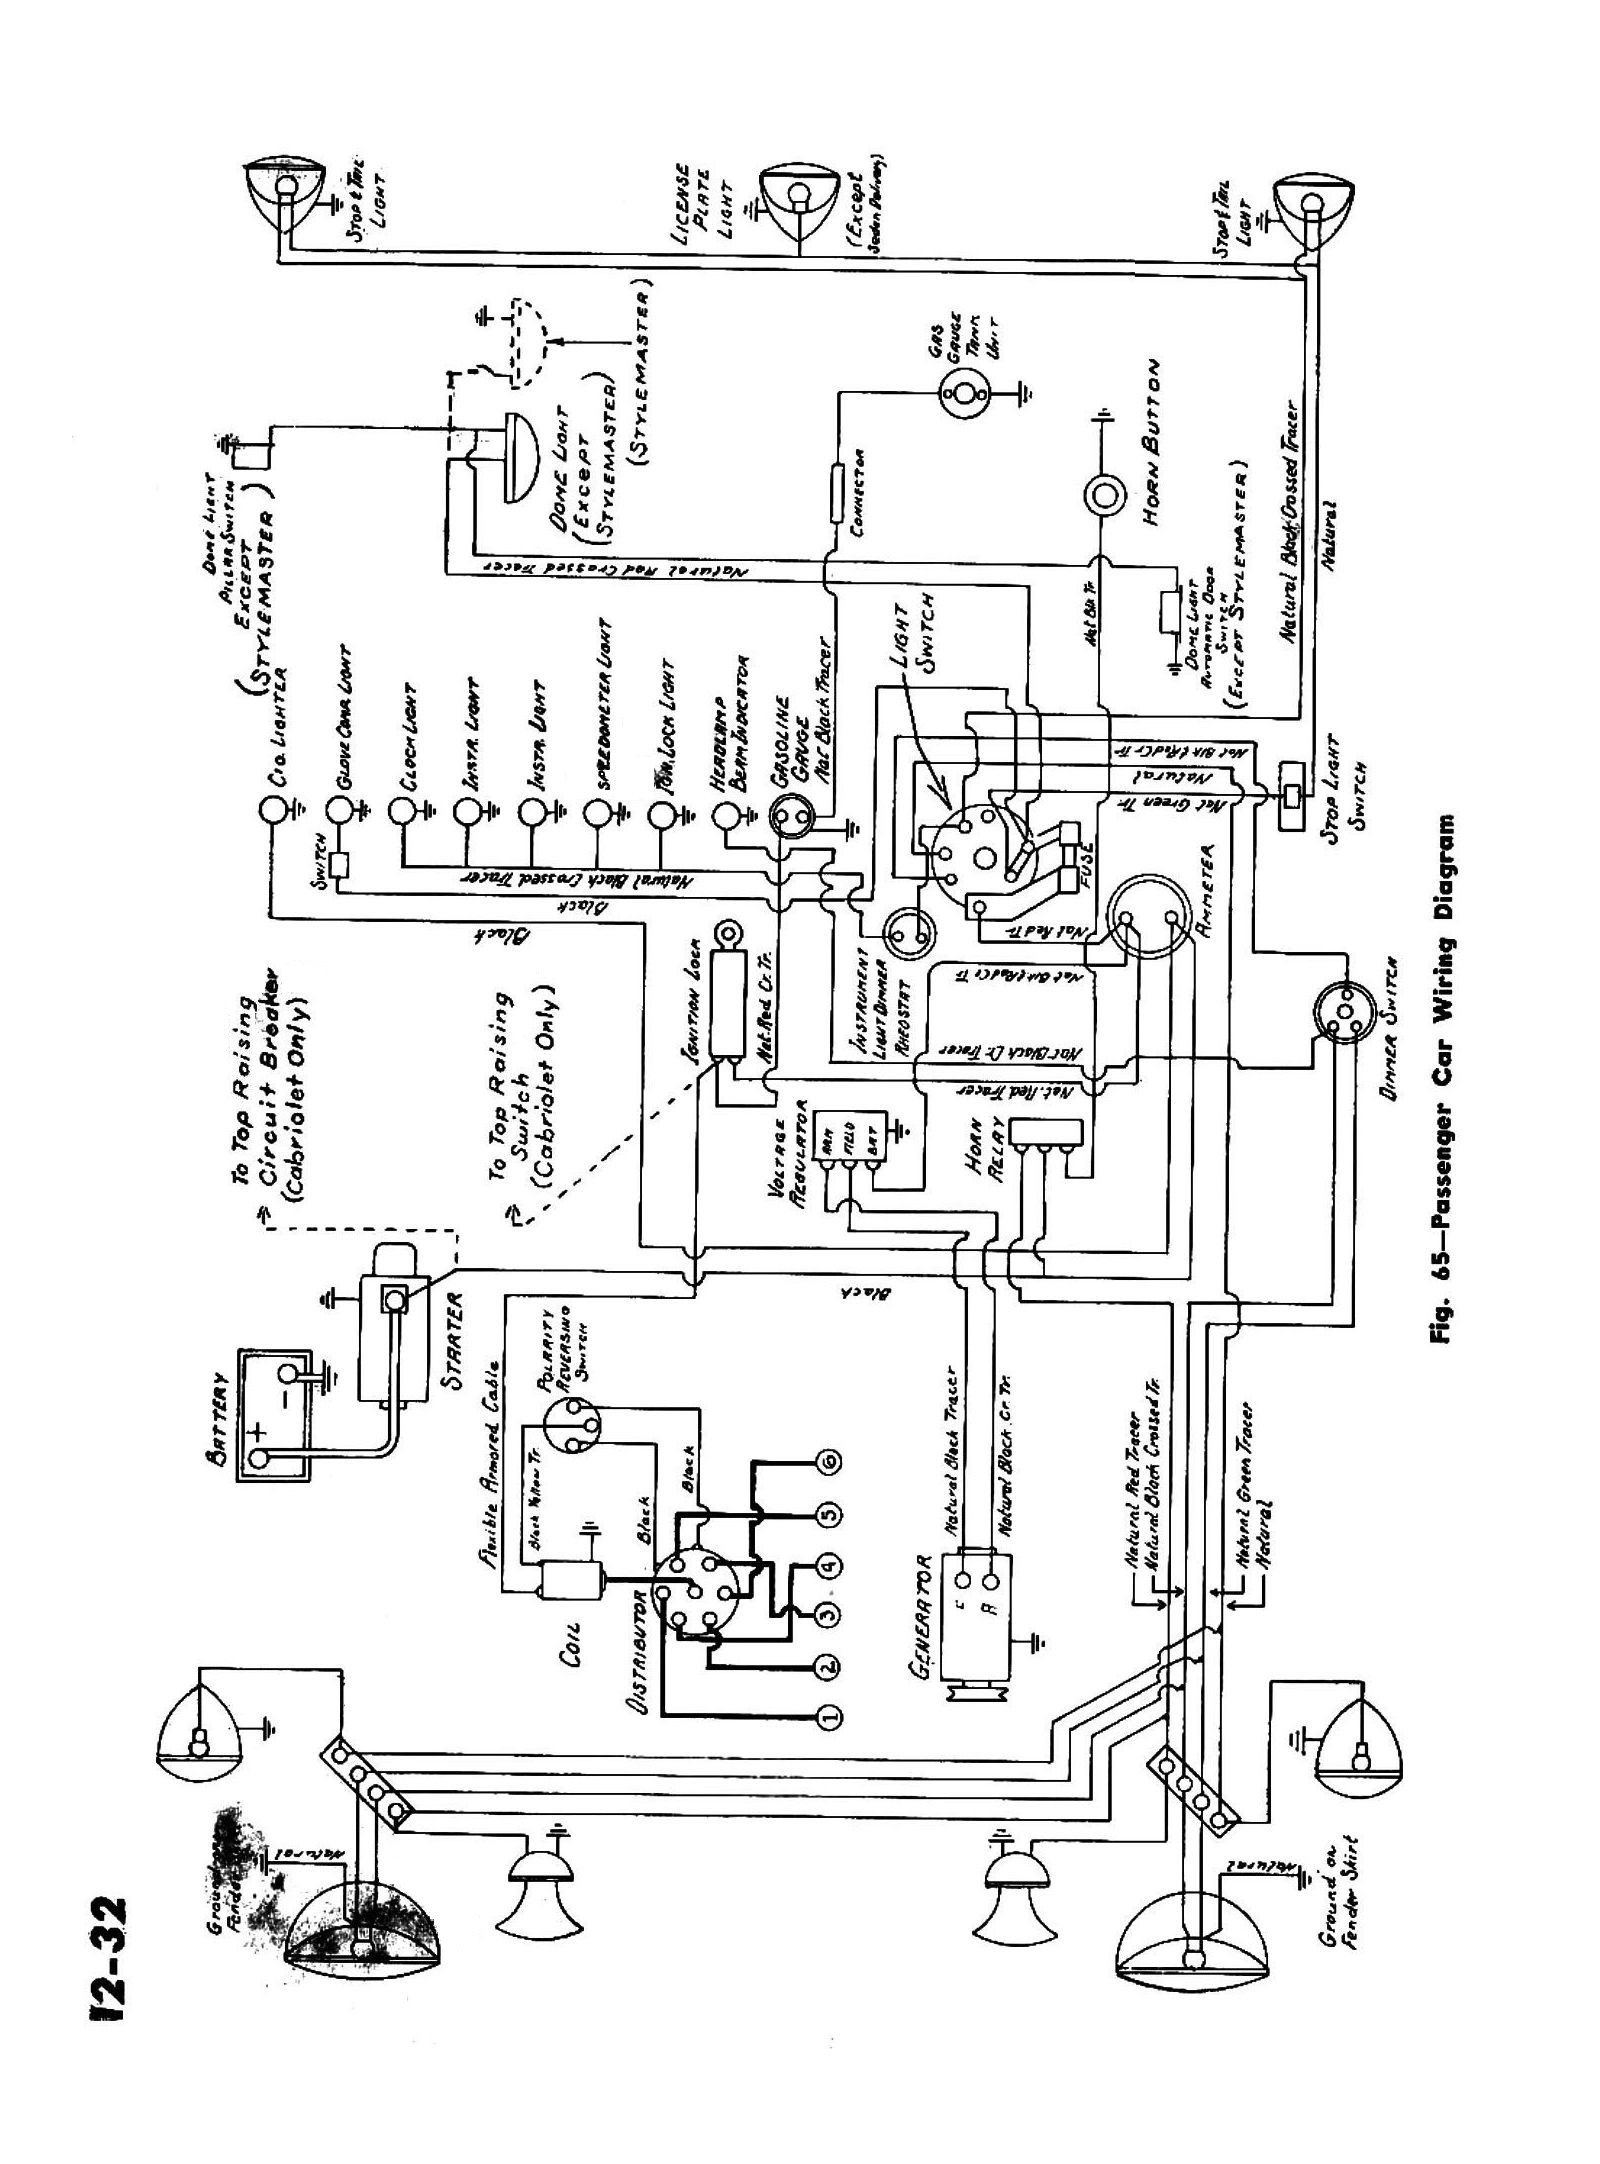 45car chevy wiring diagrams car wiring diagram at eliteediting.co